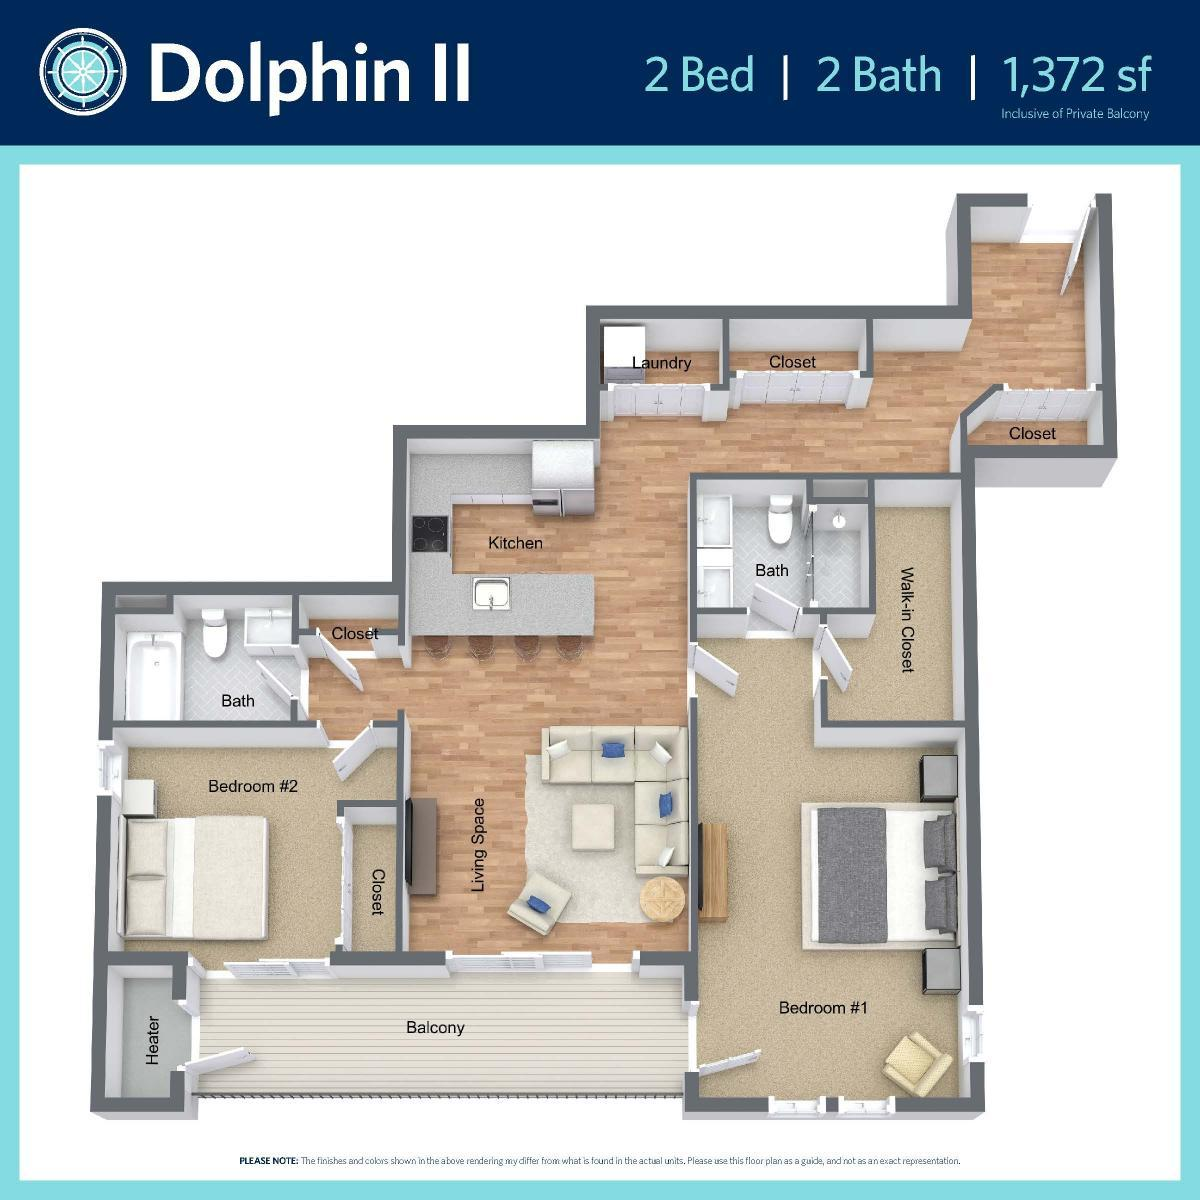 Dolphin II -2 bed, 2 bath -1,372 sq ft